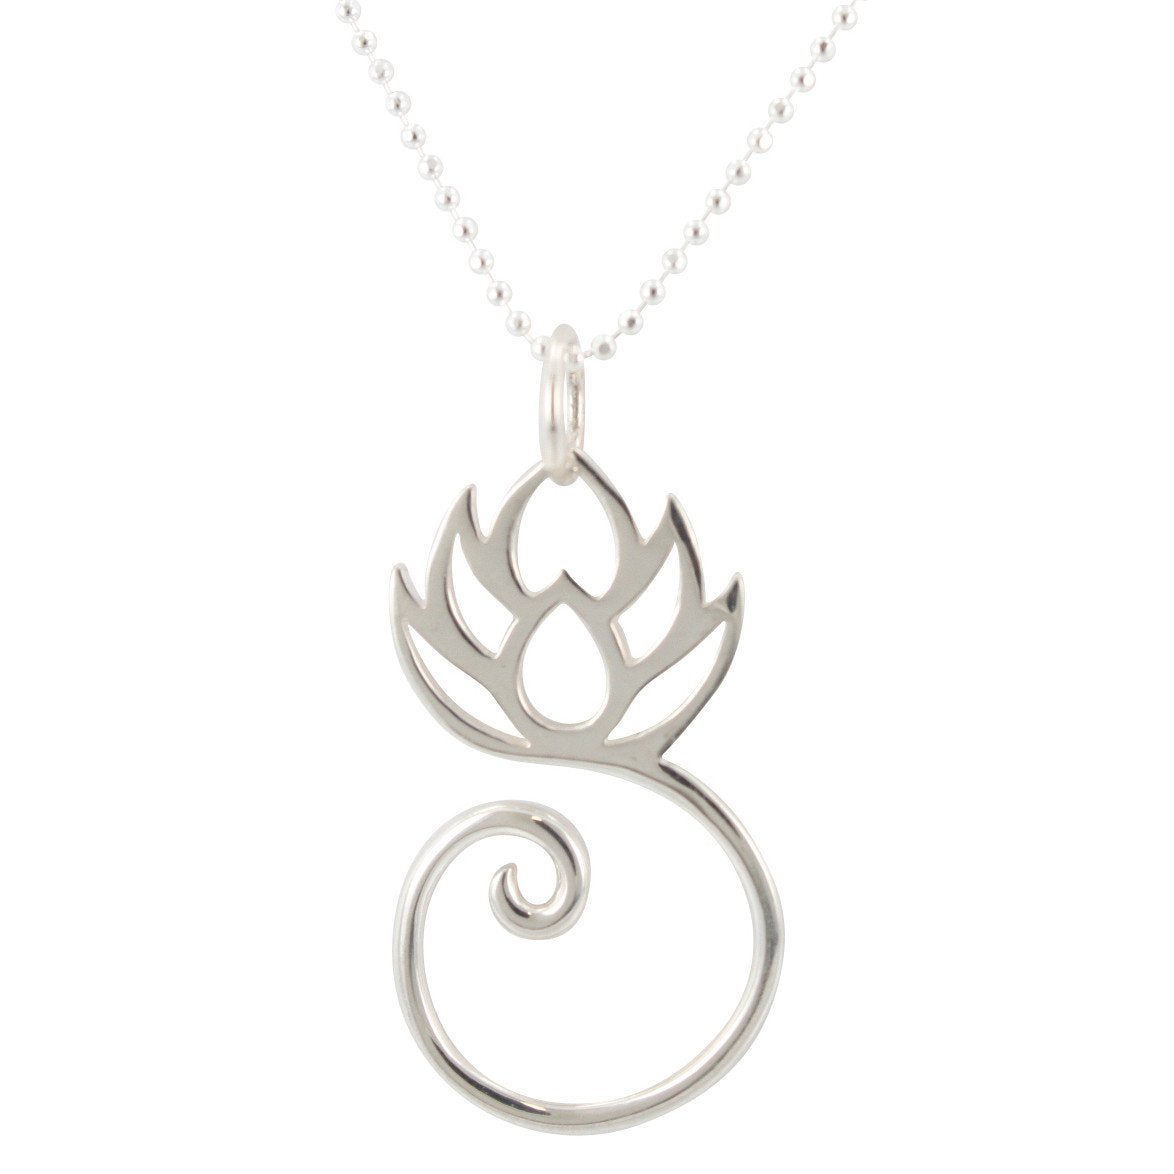 Sterling Silver Lotus Flower Charm Holder Necklace 8438 Ss Zoe